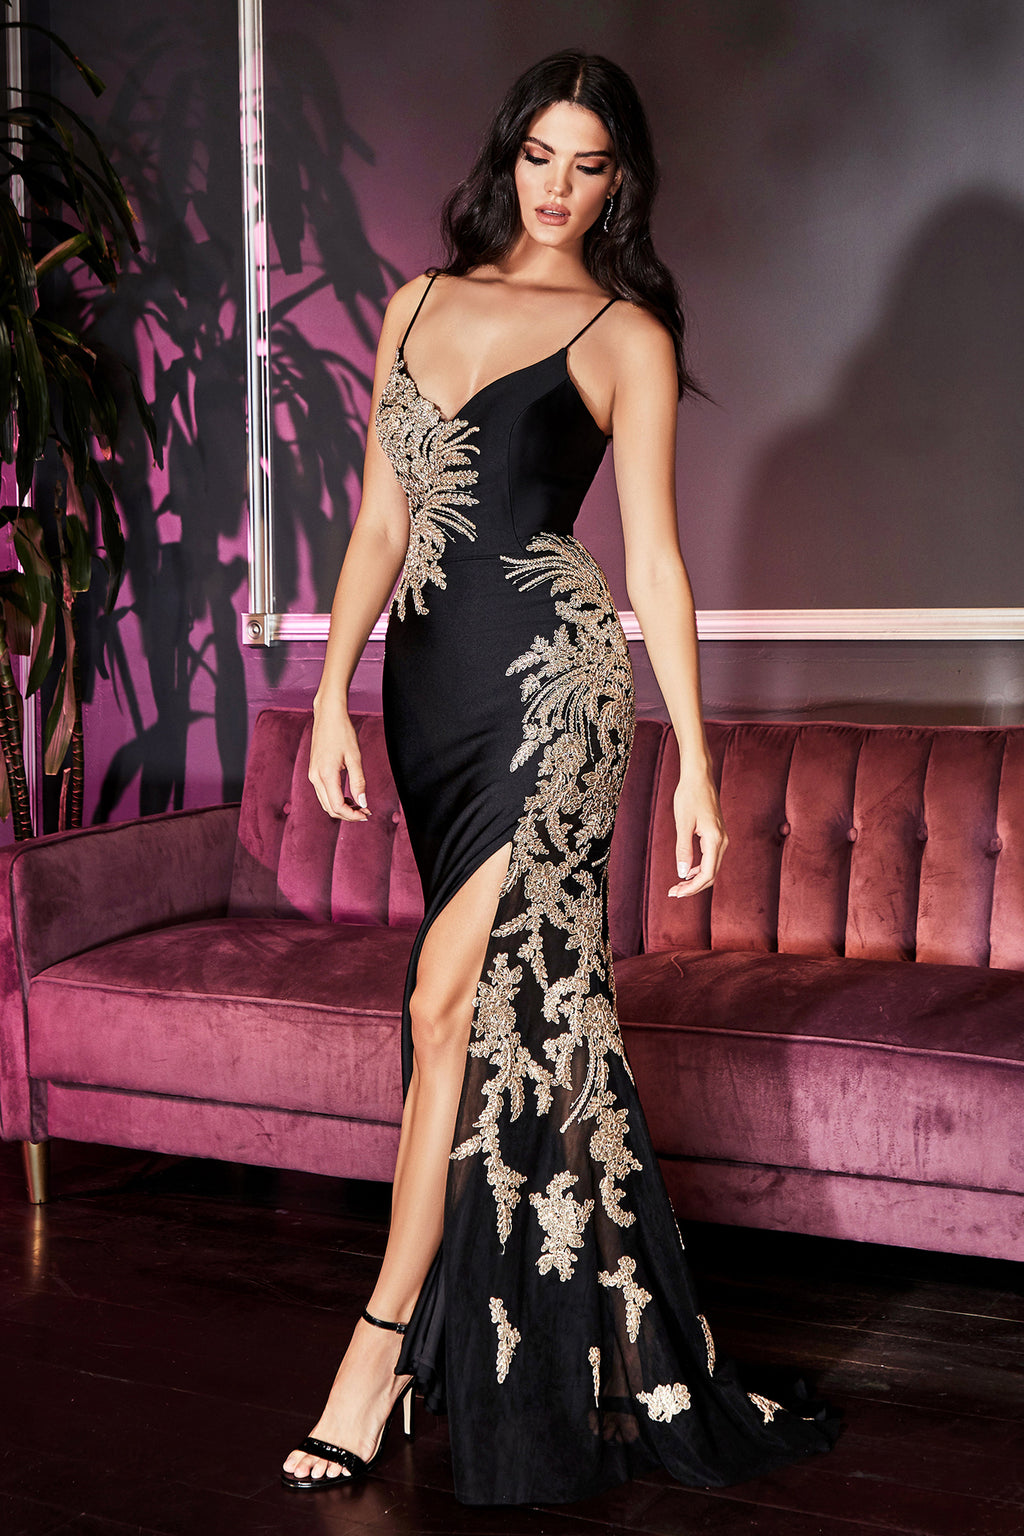 Elegant Long Gown with Gold Accents and Sexy Leg Slit #CDCM311